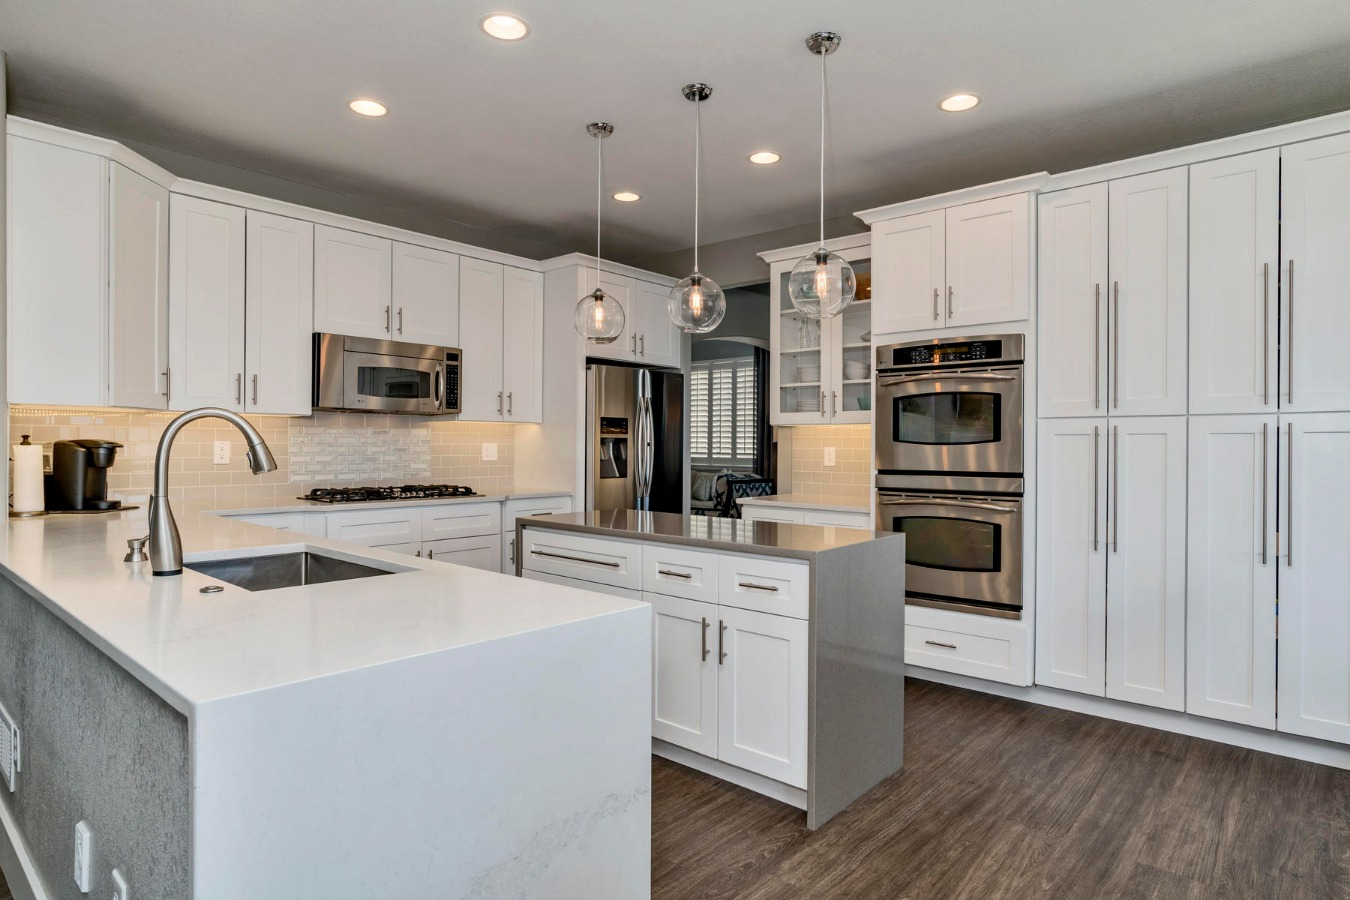 Quartz Waterfall Countertops for Great Workspaces